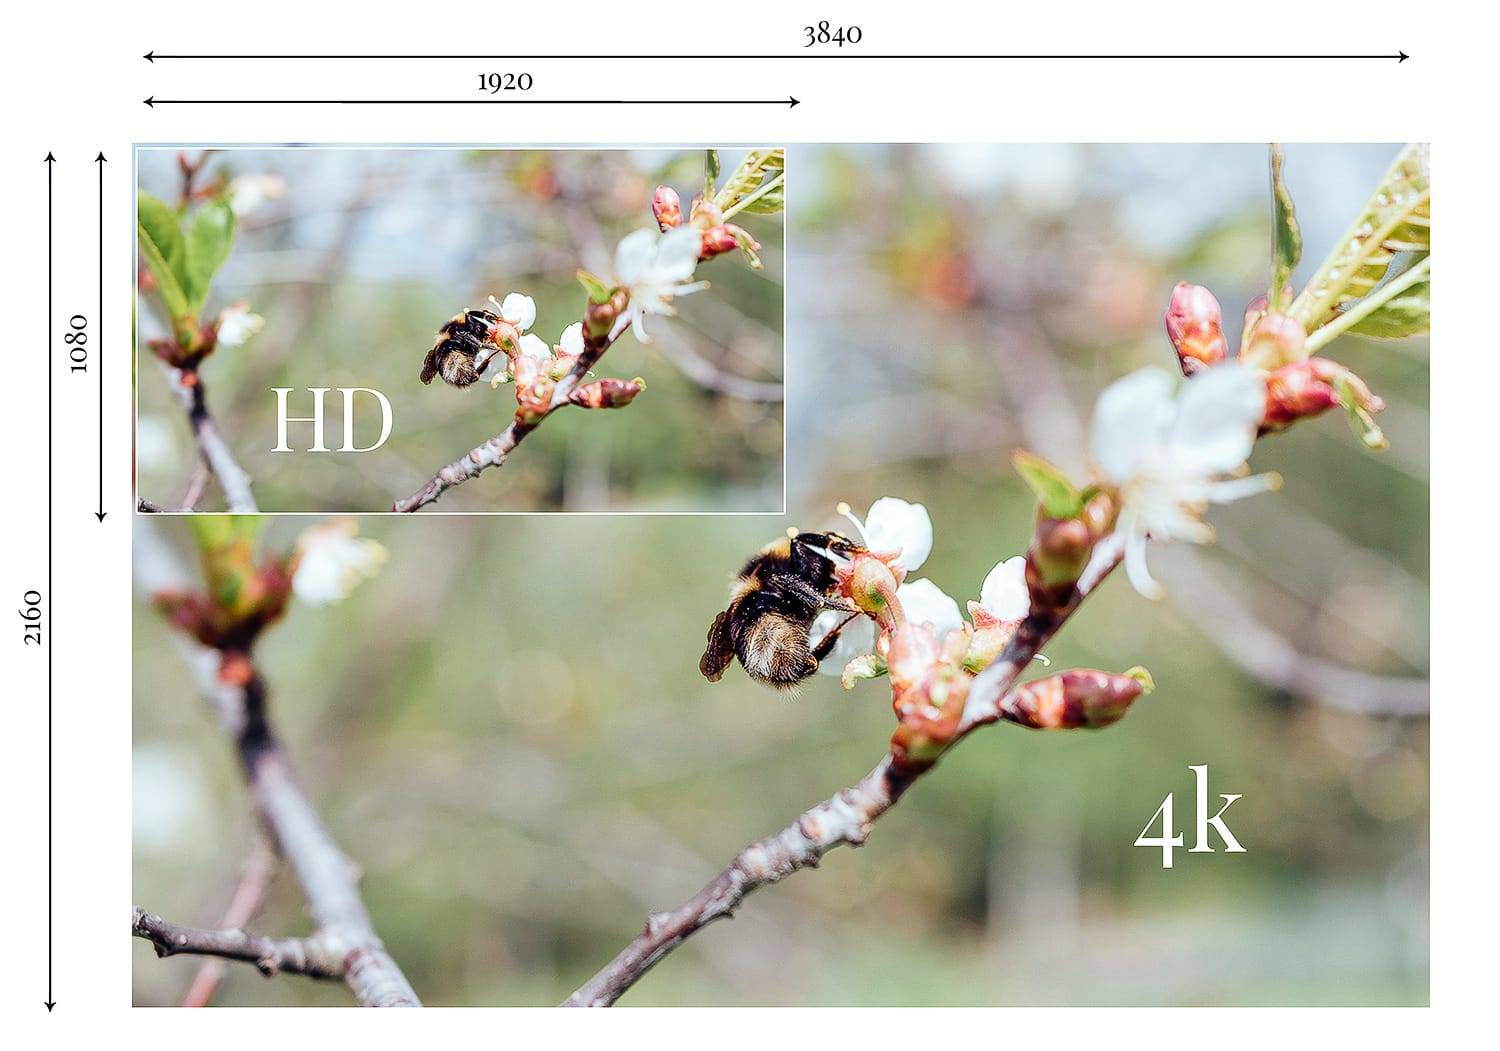 An image showing the different between HD and 4K images